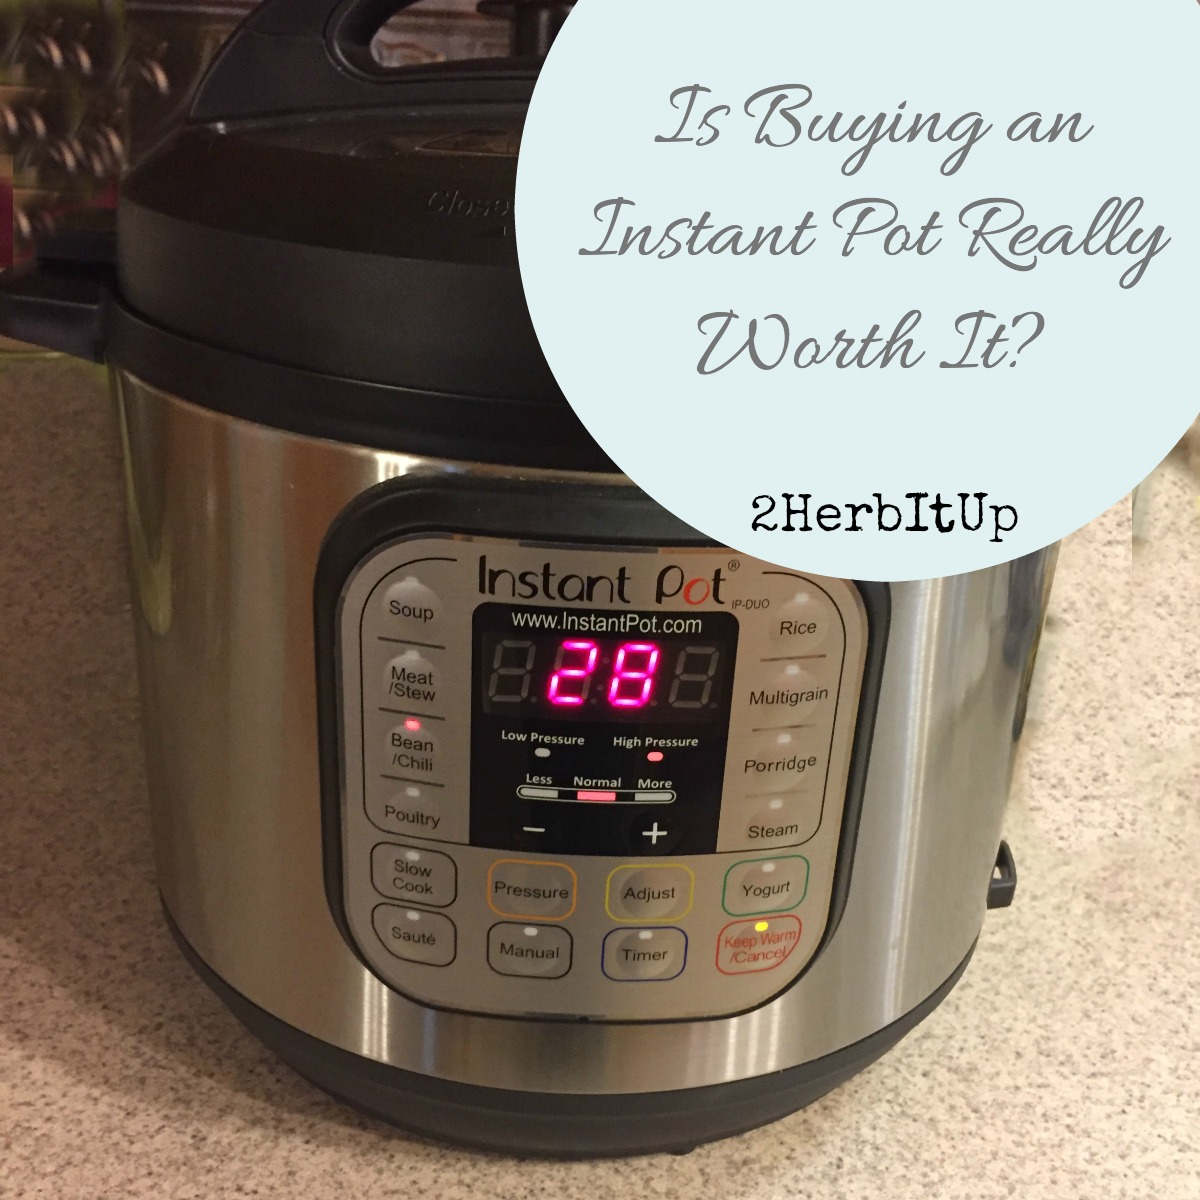 Ten reasons you should not buy an Instant Pot. Read here to see if buying an Instant Pot is worth the investment.